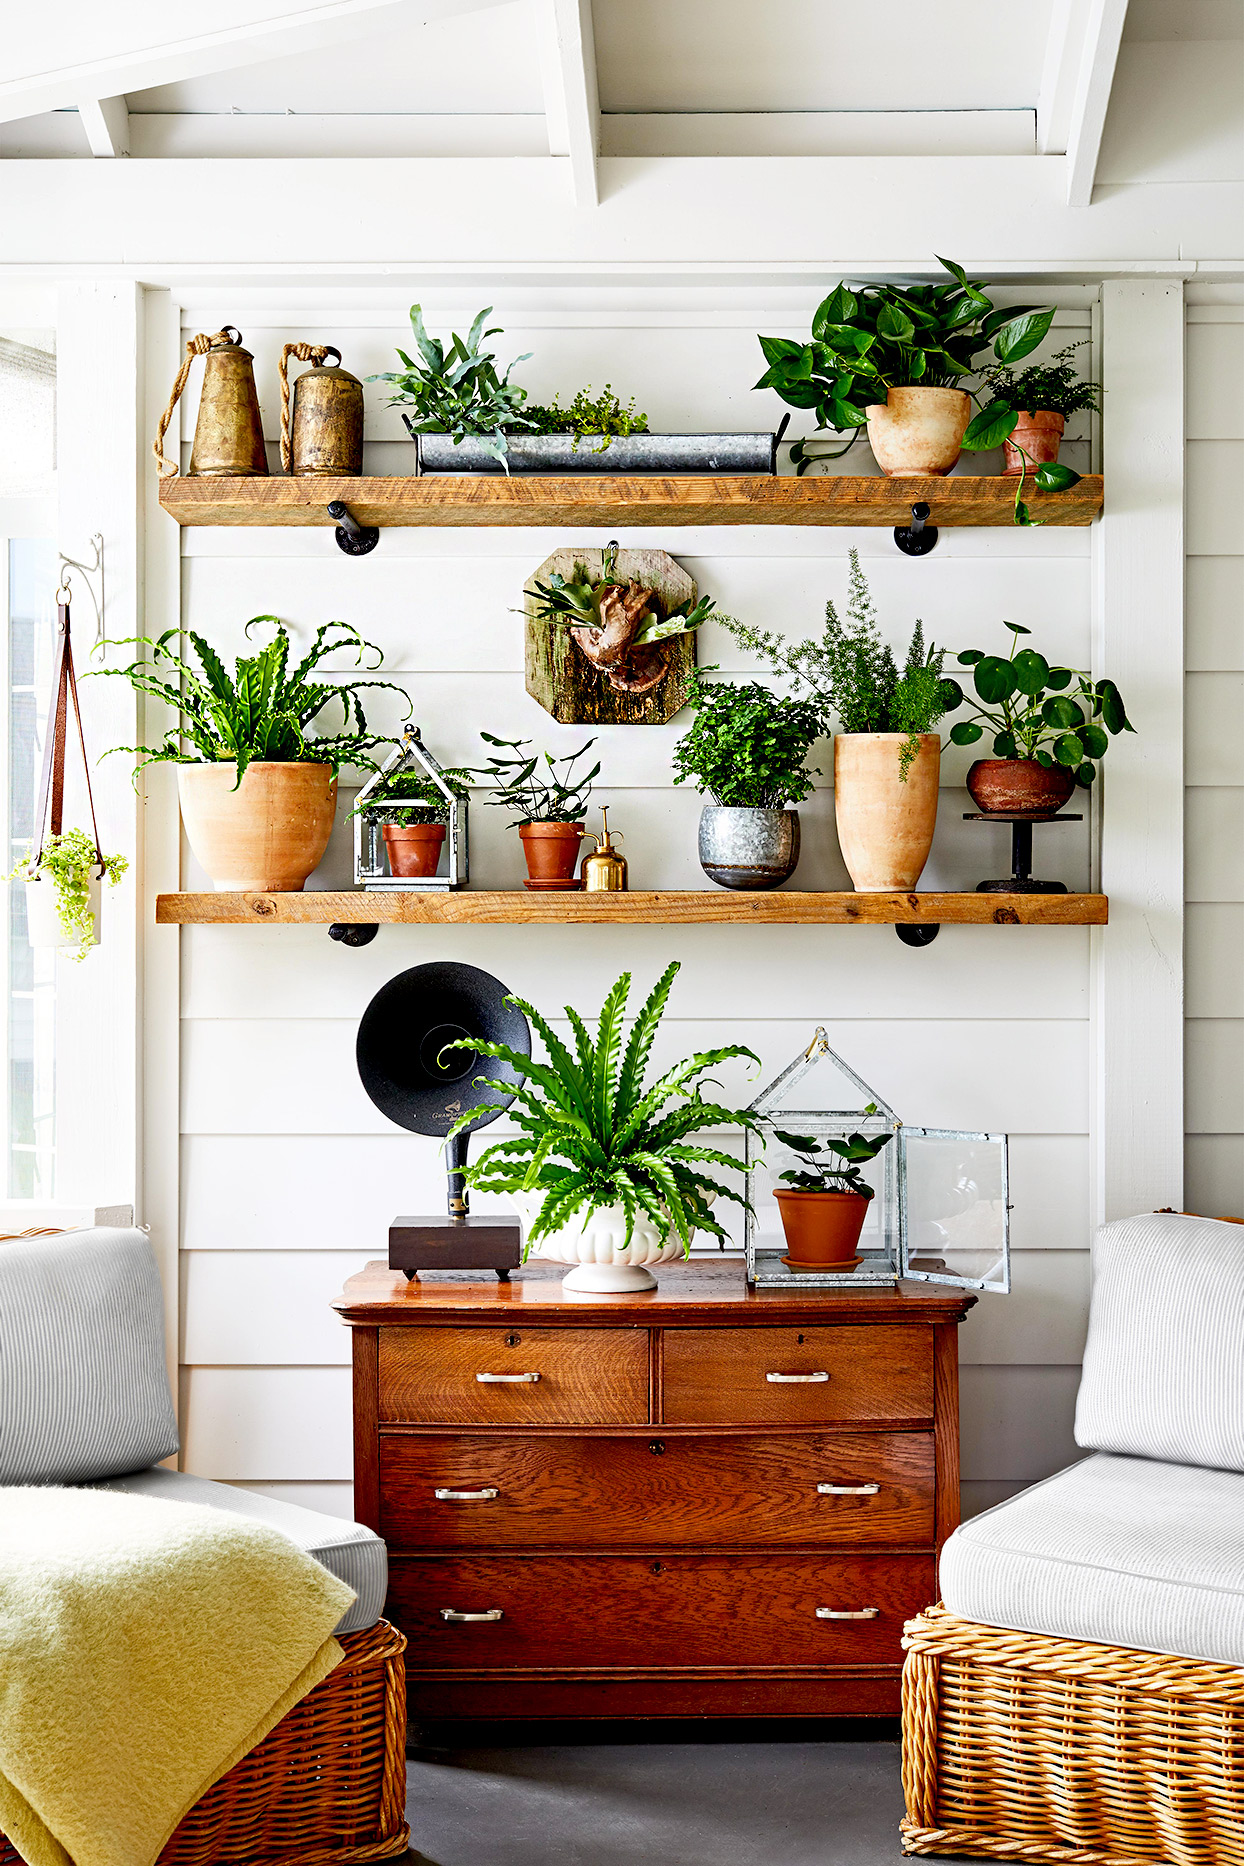 plants in a sunlit room with chairs for relaxing